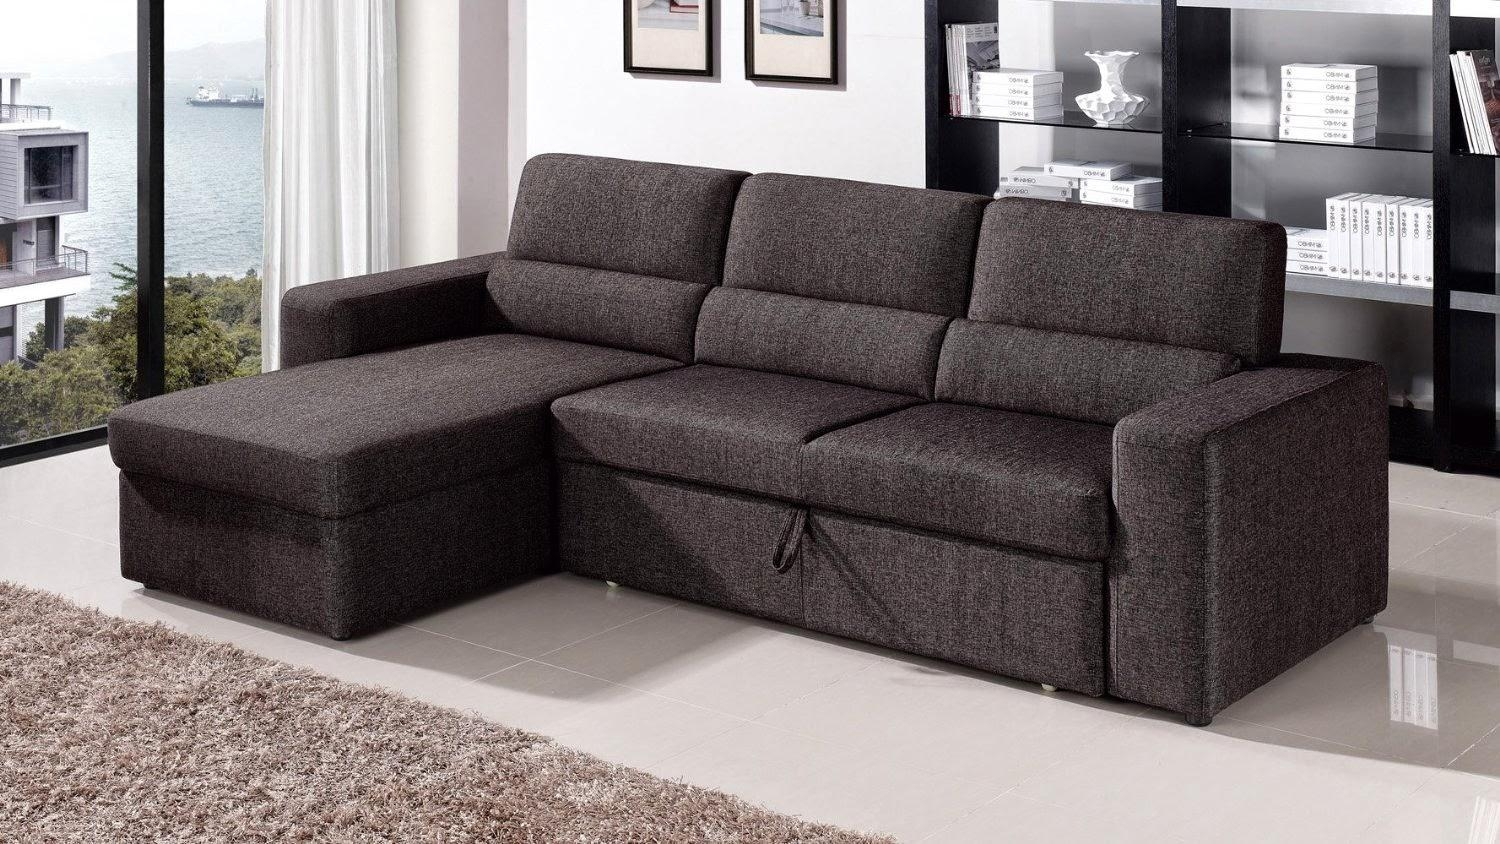 Elegant Sectional Sofa With Pull Out Sleeper 60 In Sofa Sleeper Regarding Sectional Sofa San Diego (Image 2 of 20)